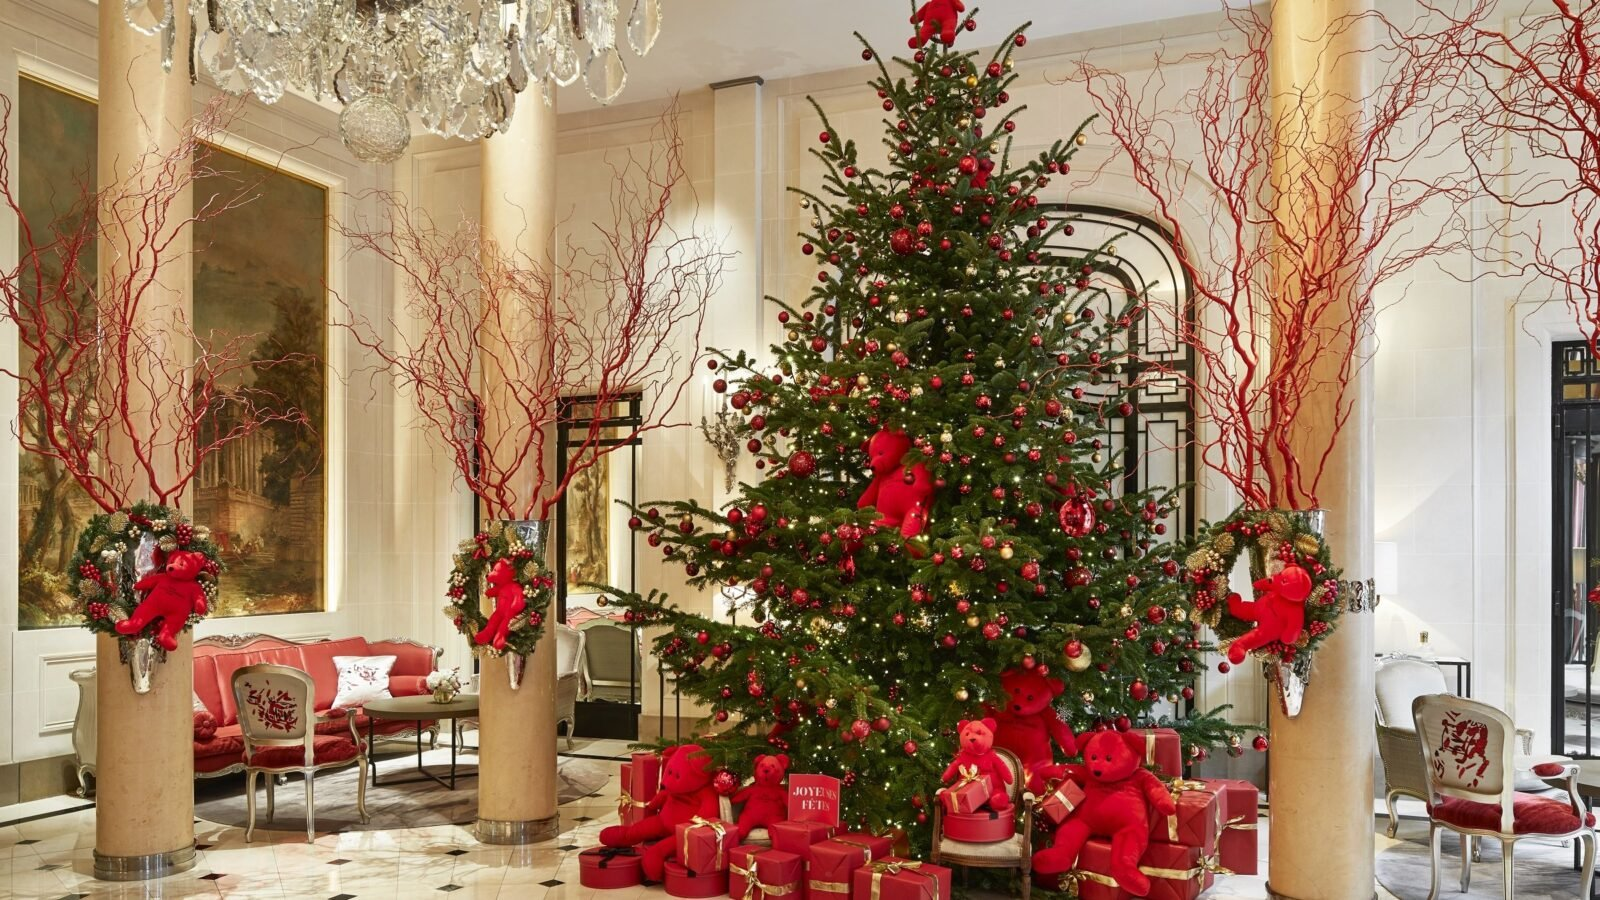 Festive Season at Hôtel Plaza Athénée, Paris